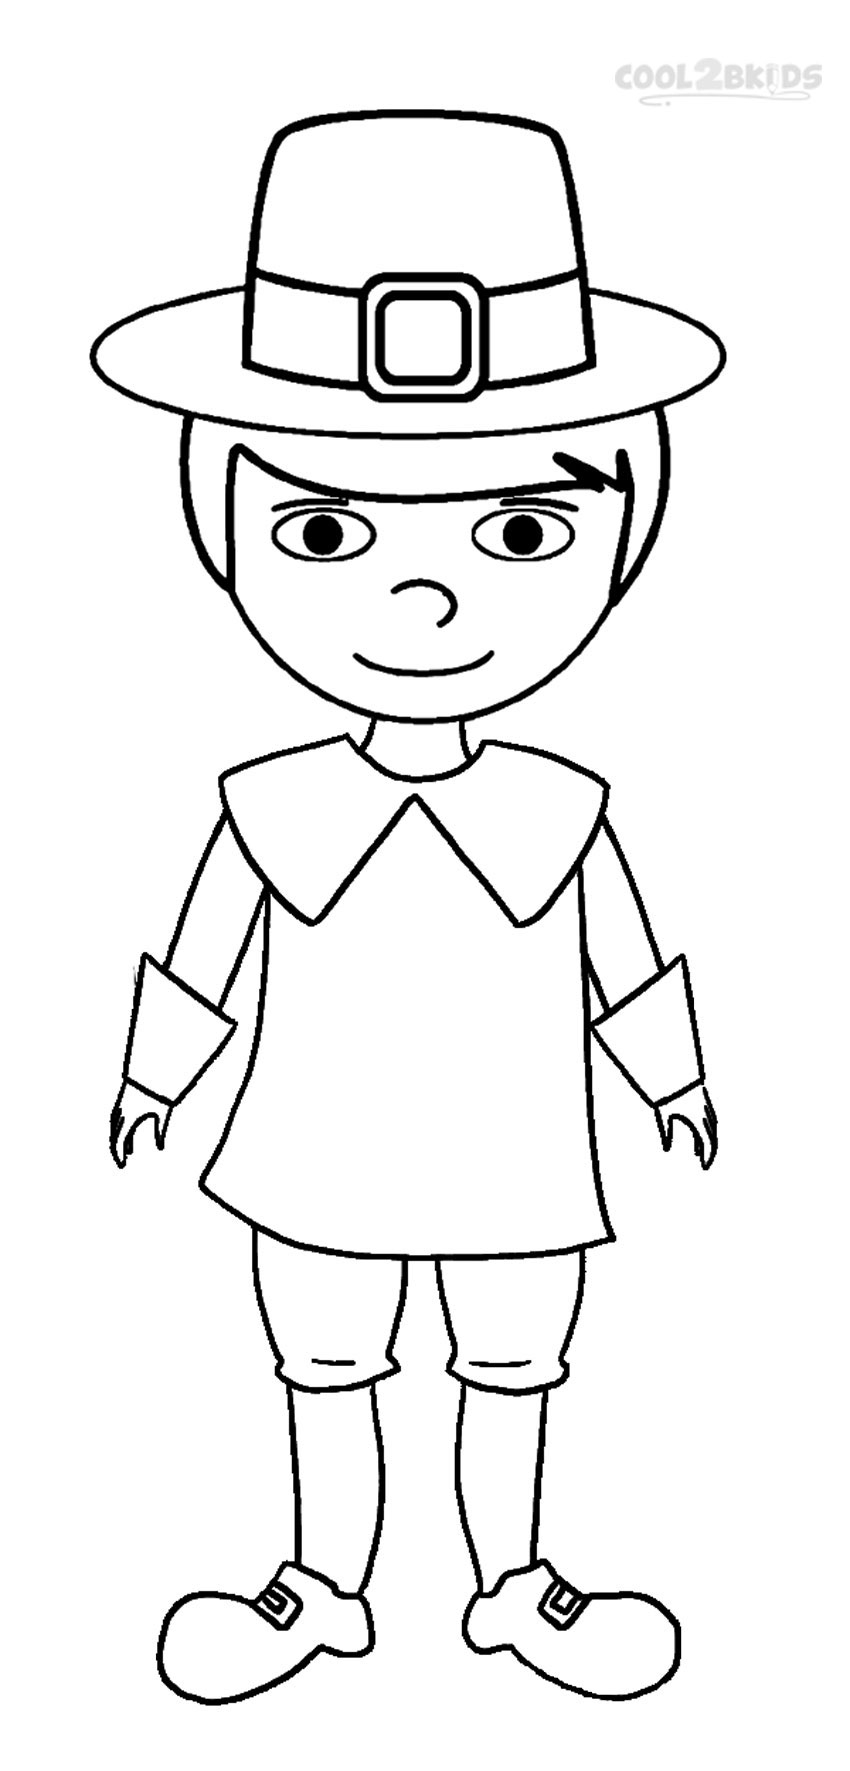 Pilgrim Coloring Pages Printable Pilgrims Coloring Pages For Kids Cool2bkids